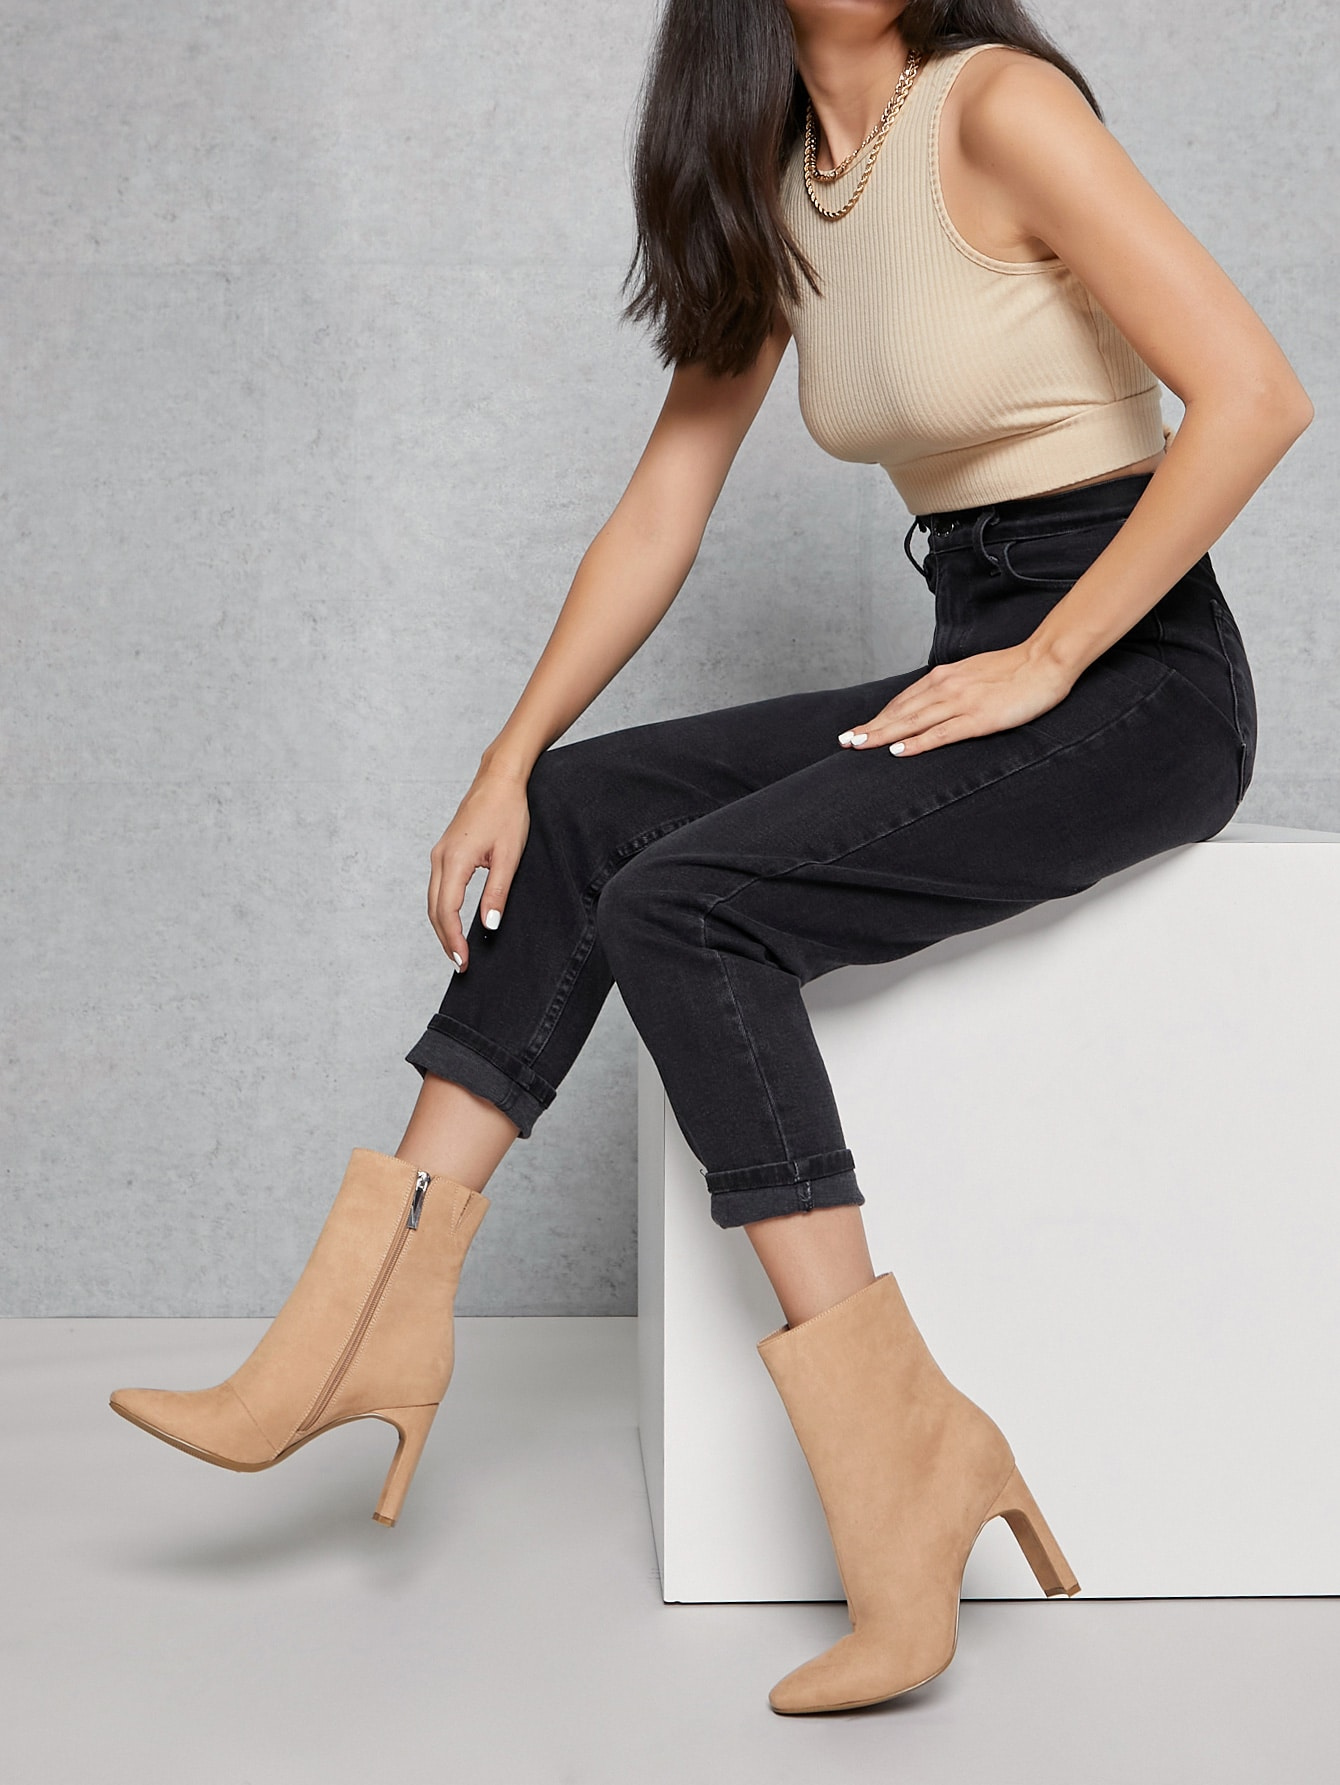 Vegan Suede Zippered Pointed Toe Boots